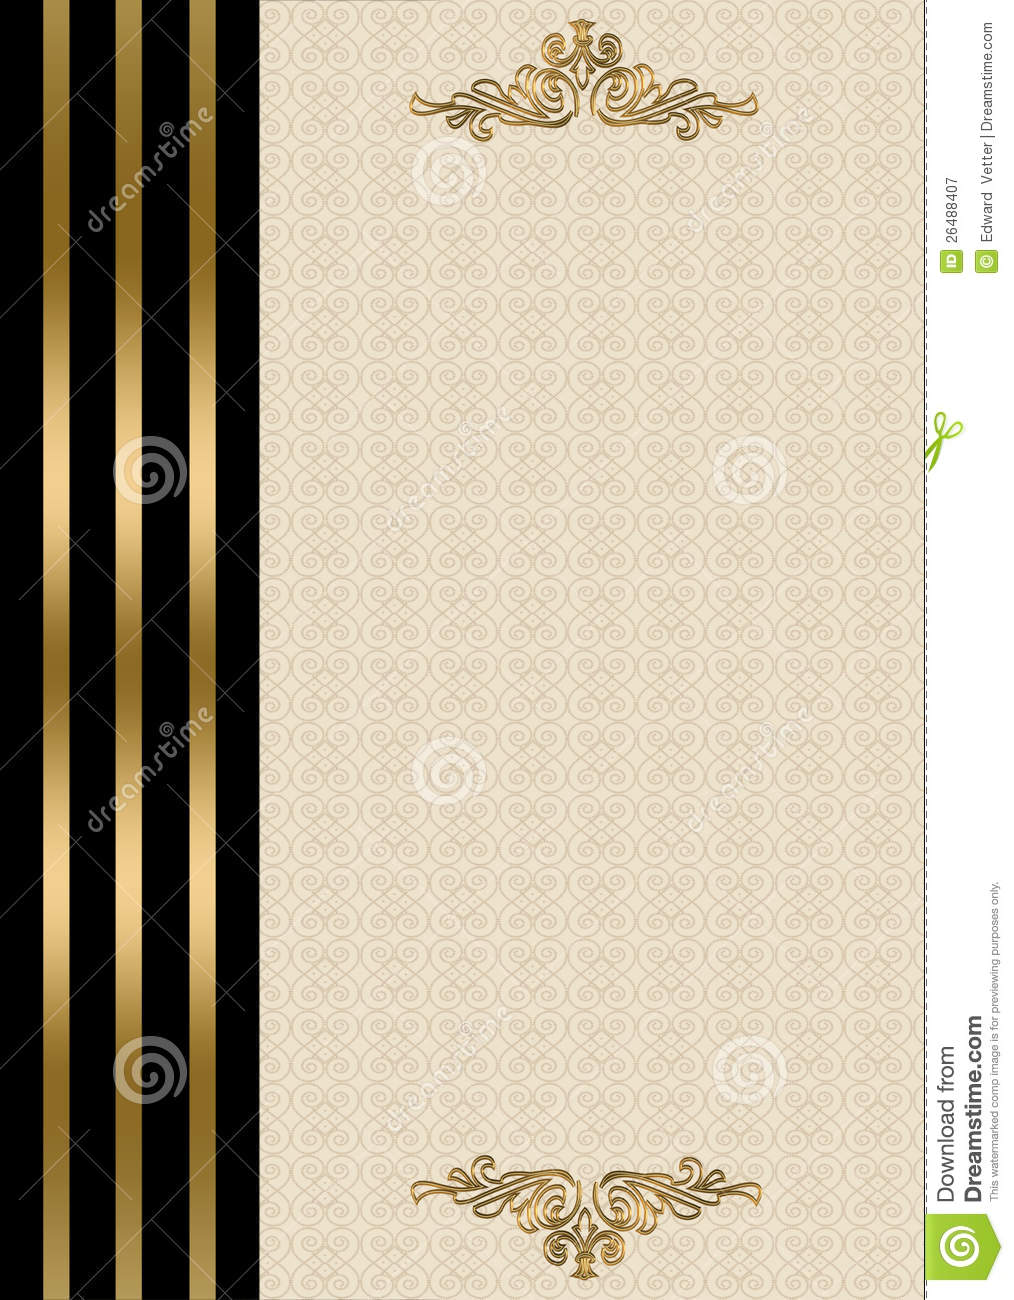 wedding invitation gold and black border stock